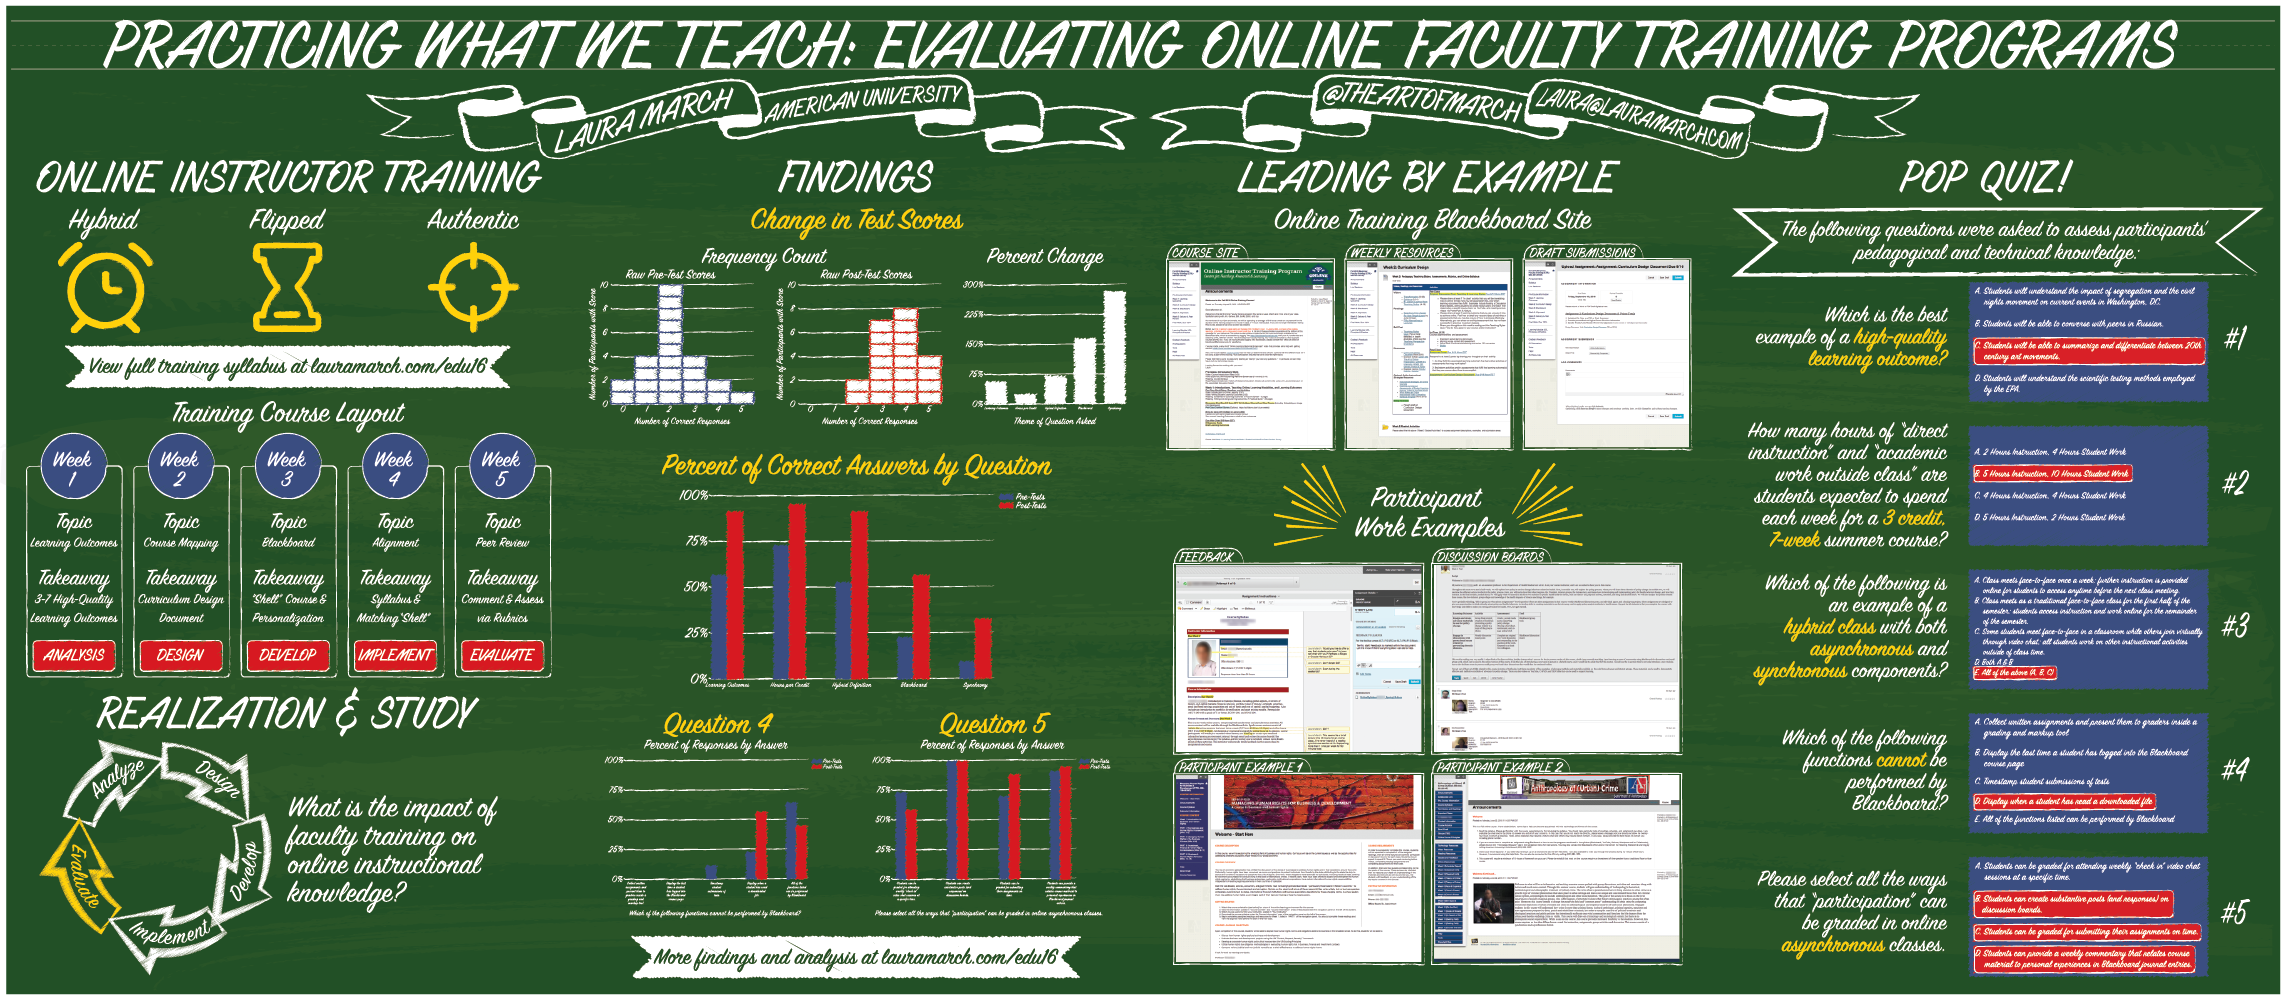 Poster for Educause Session